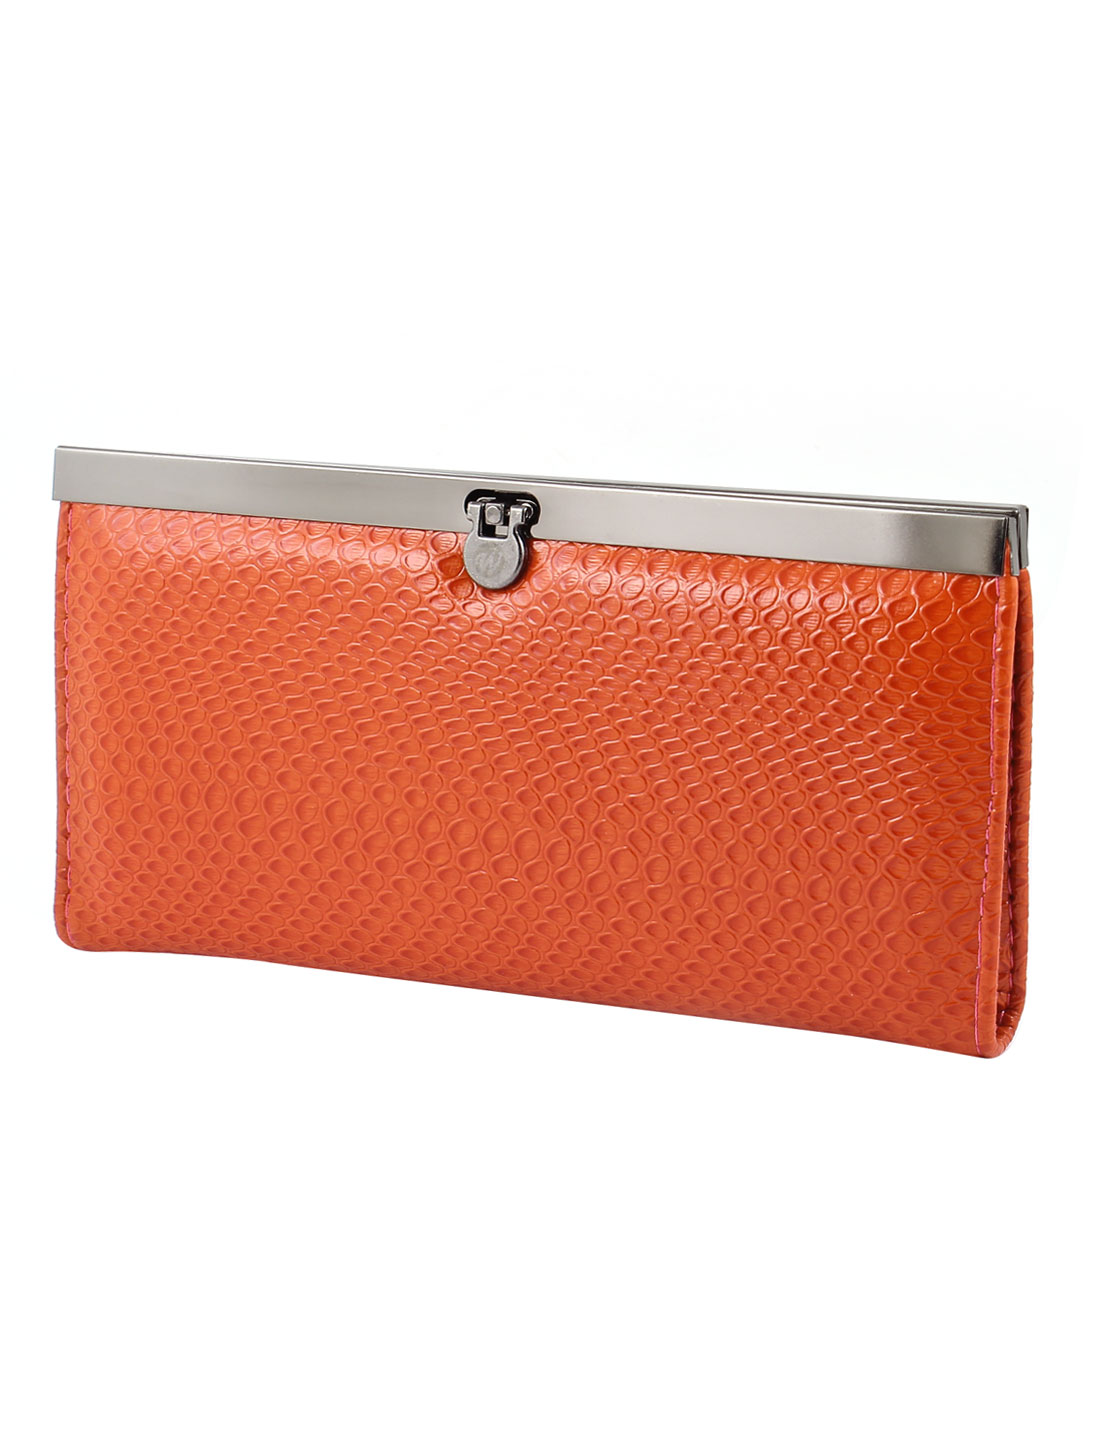 Women 4 Components Flip Lock Closure Coins Money Holder Purse Orange